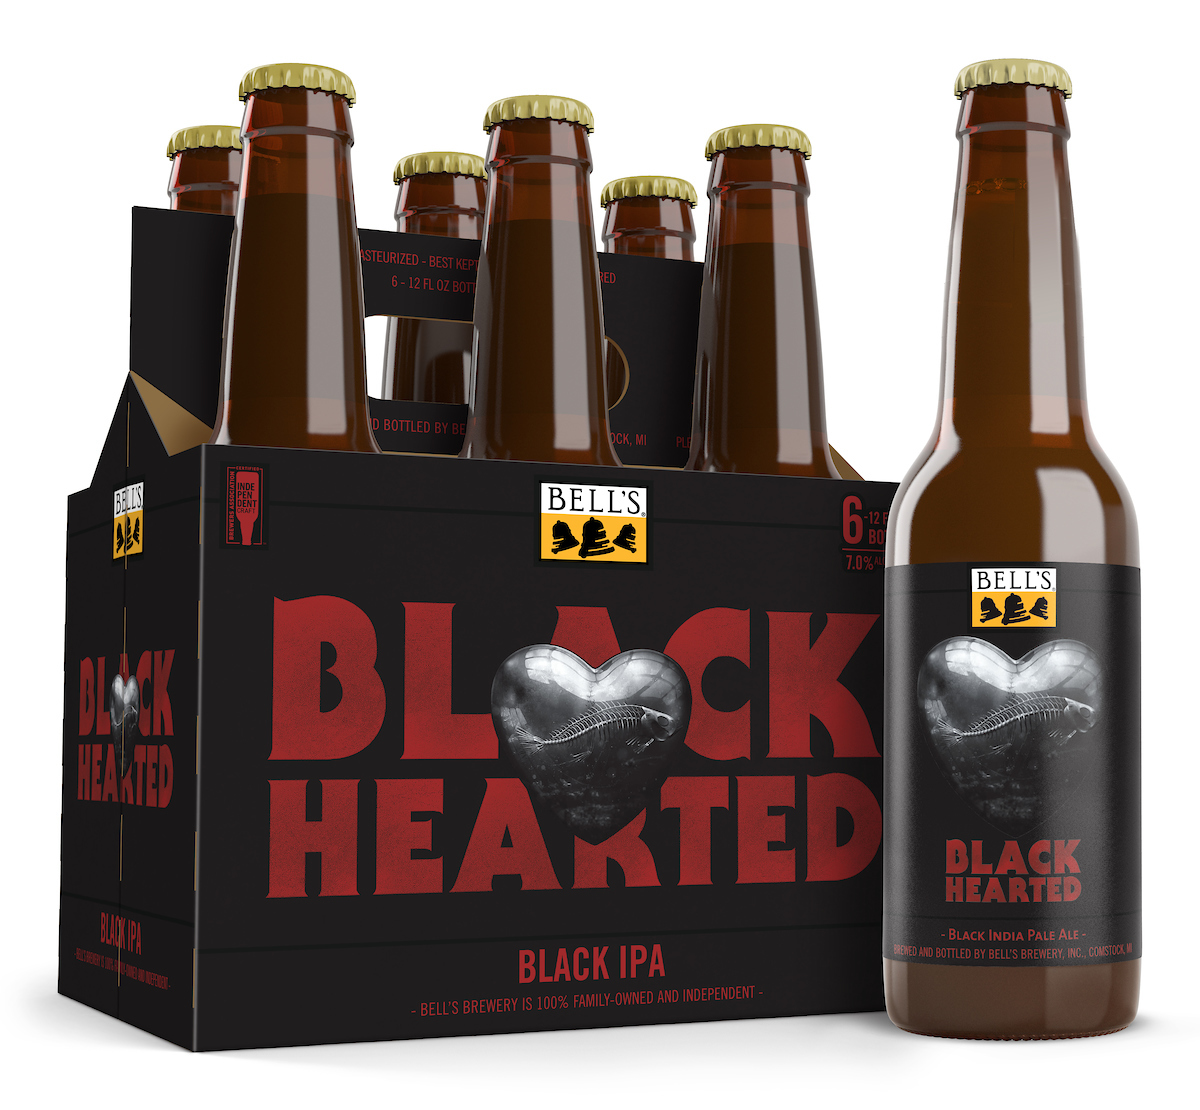 Bell's offers Black Hearted IPA to the broken-hearted on Valentine's Day